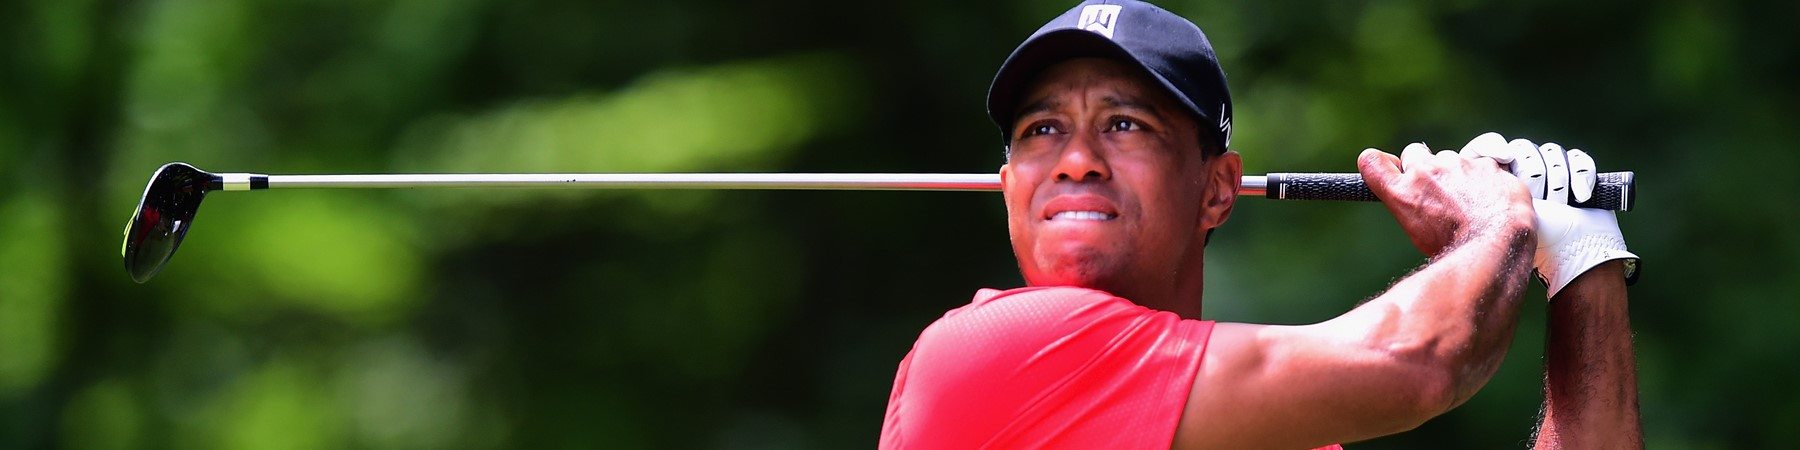 Tiger Woods Blog Image